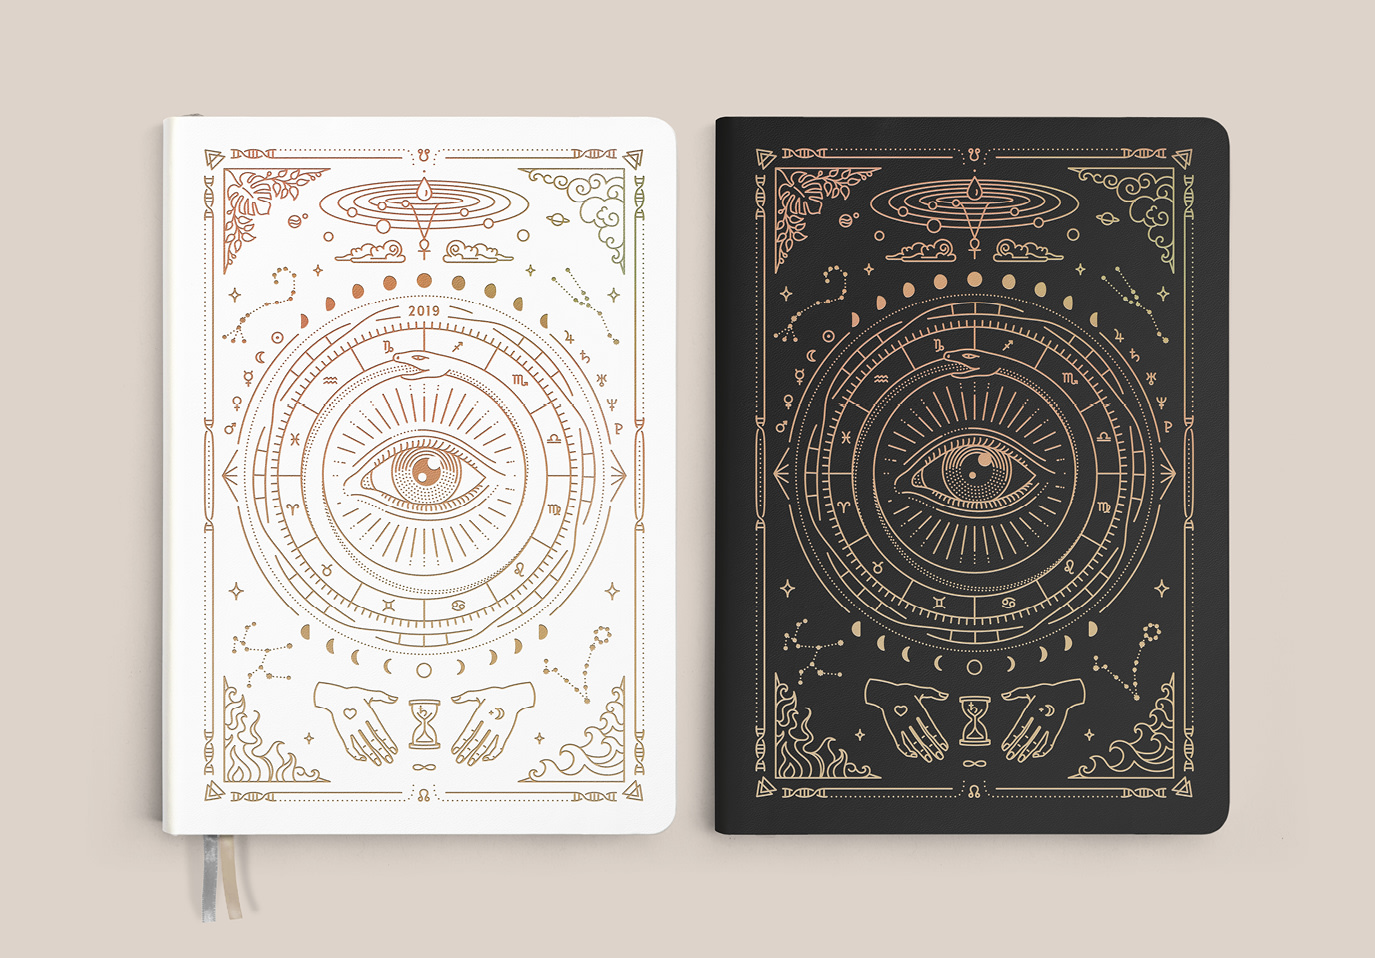 8 Pst To Aest 2019 astrological plannerthe magic of i.   indiegogo